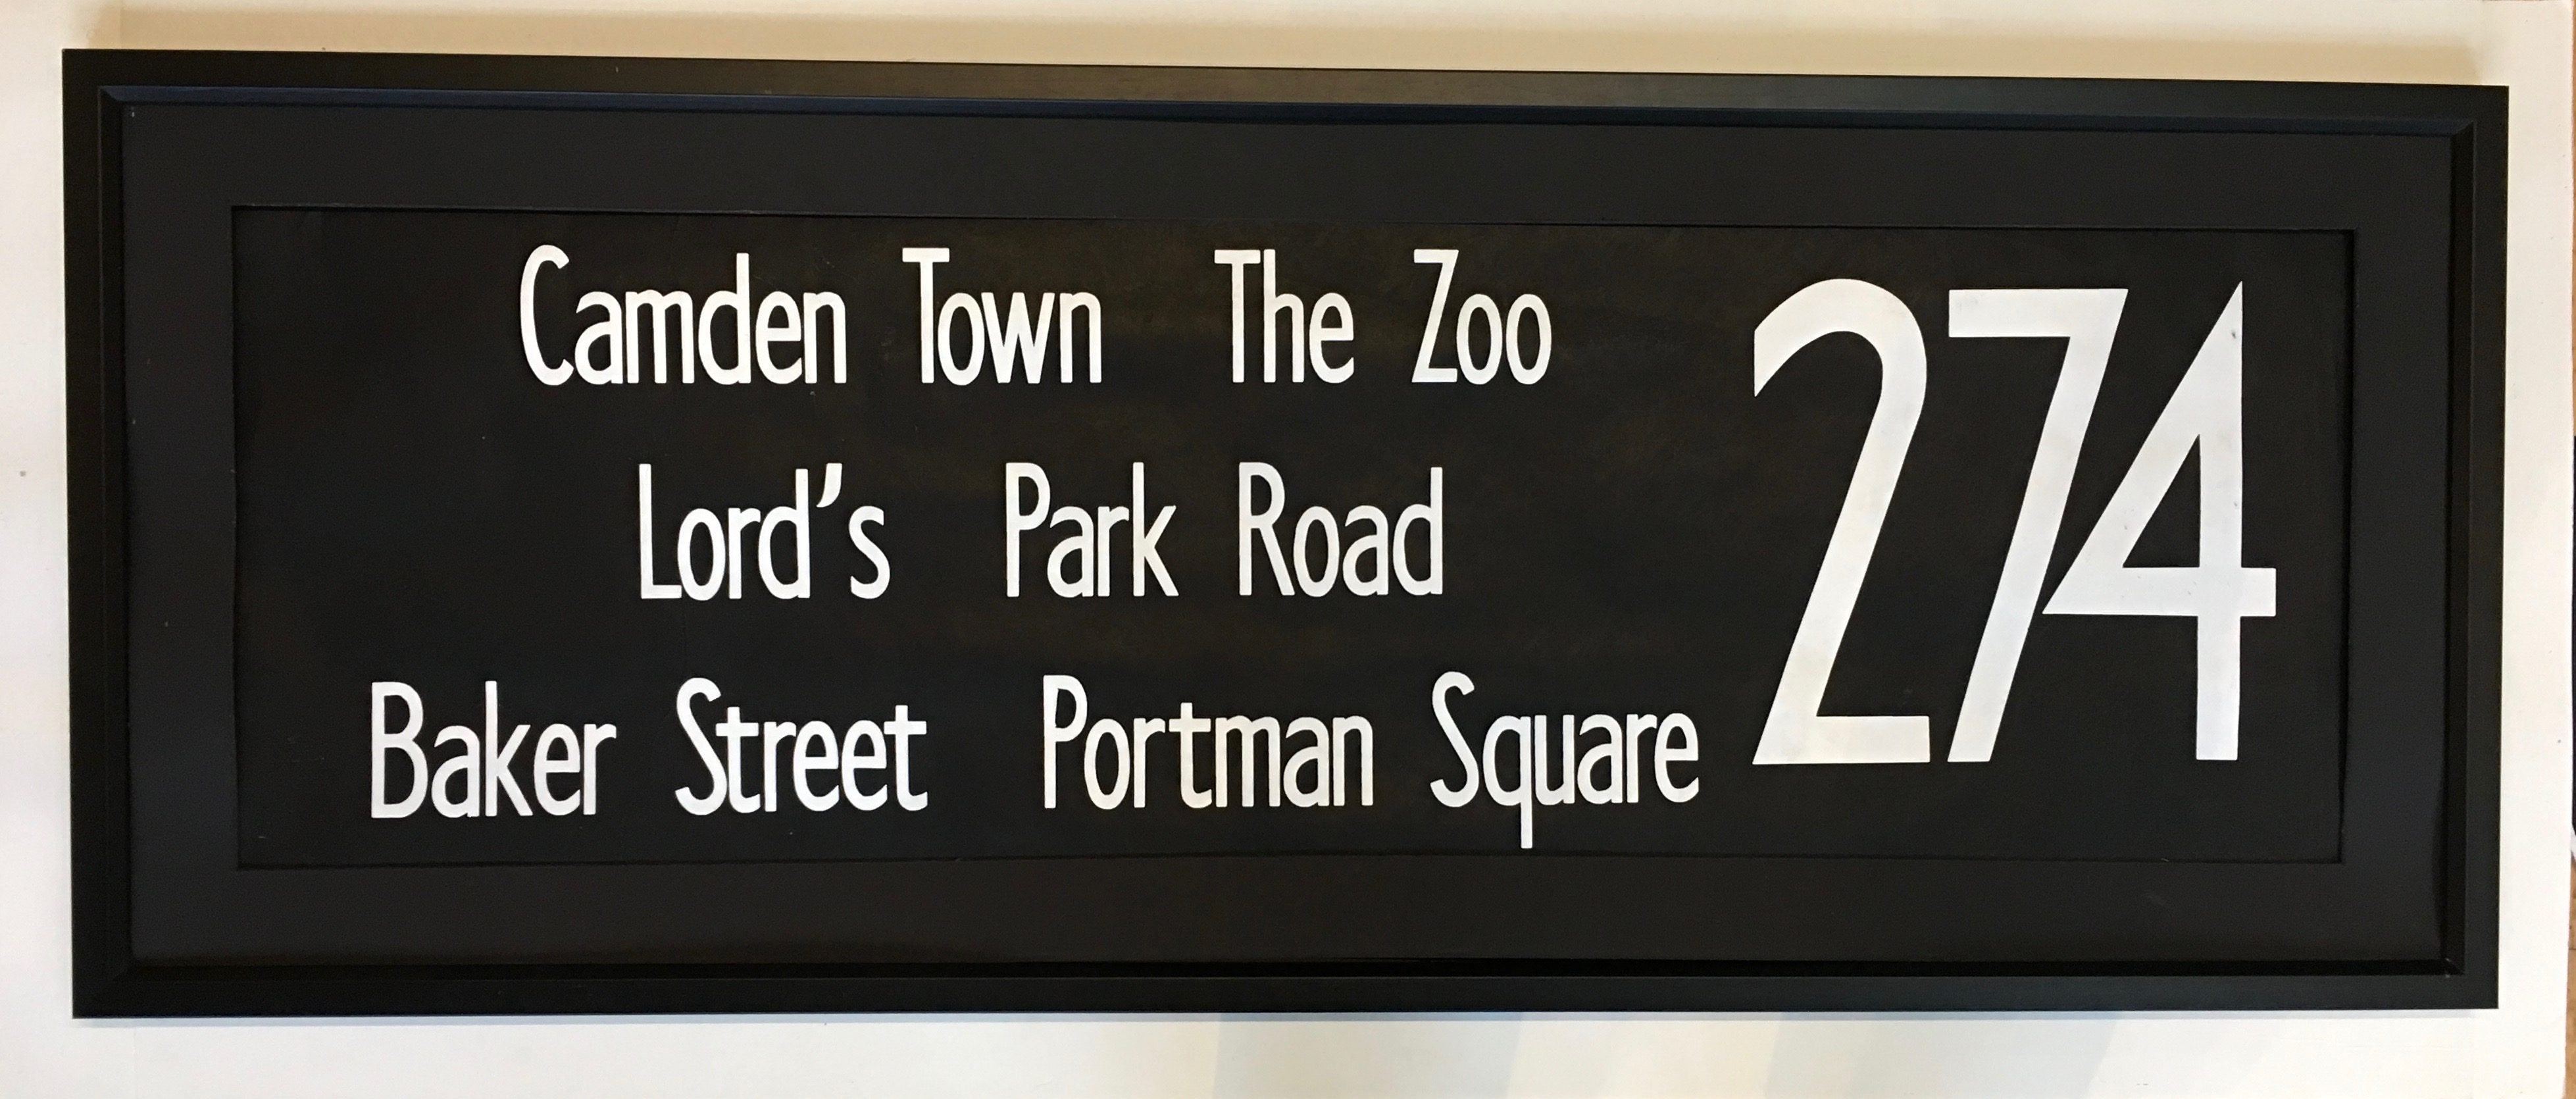 274 Camden Town, Zoo, Lord's Park Road, Baker Street, Portman Square